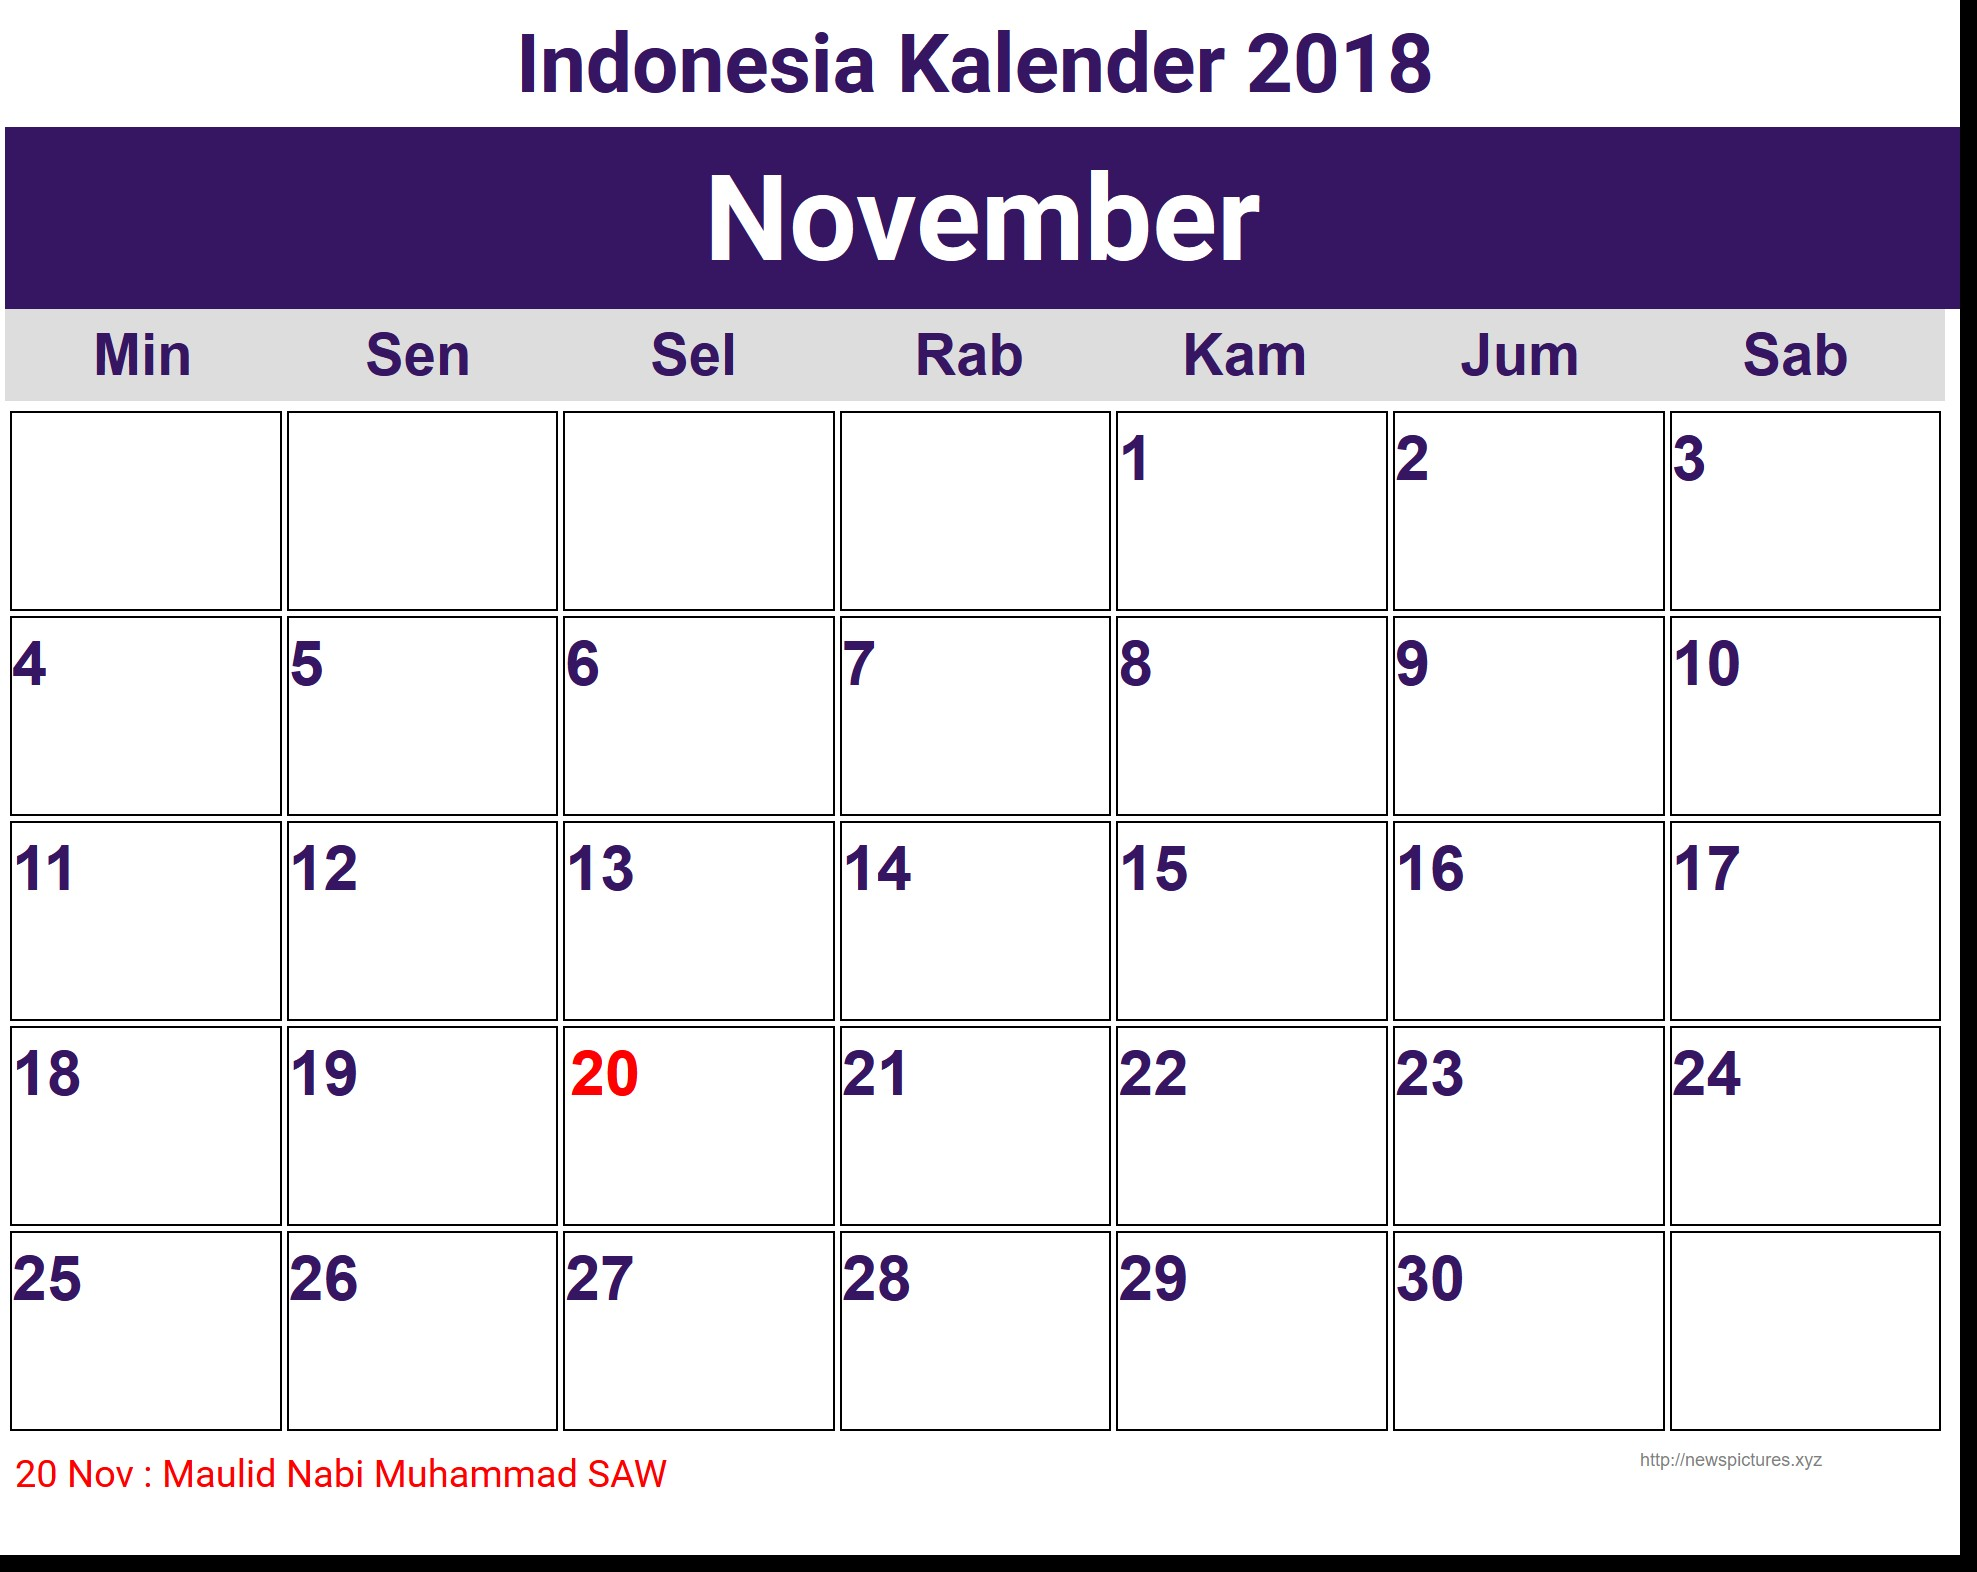 Kalender 2019 Excel Per Maand Más Actual Image for November Indonesia Kalender 2018 Kalender Of Kalender 2019 Excel Per Maand Mejores Y Más Novedosos Kalender Kalender with Kalender Tutorial Excel Kalender with